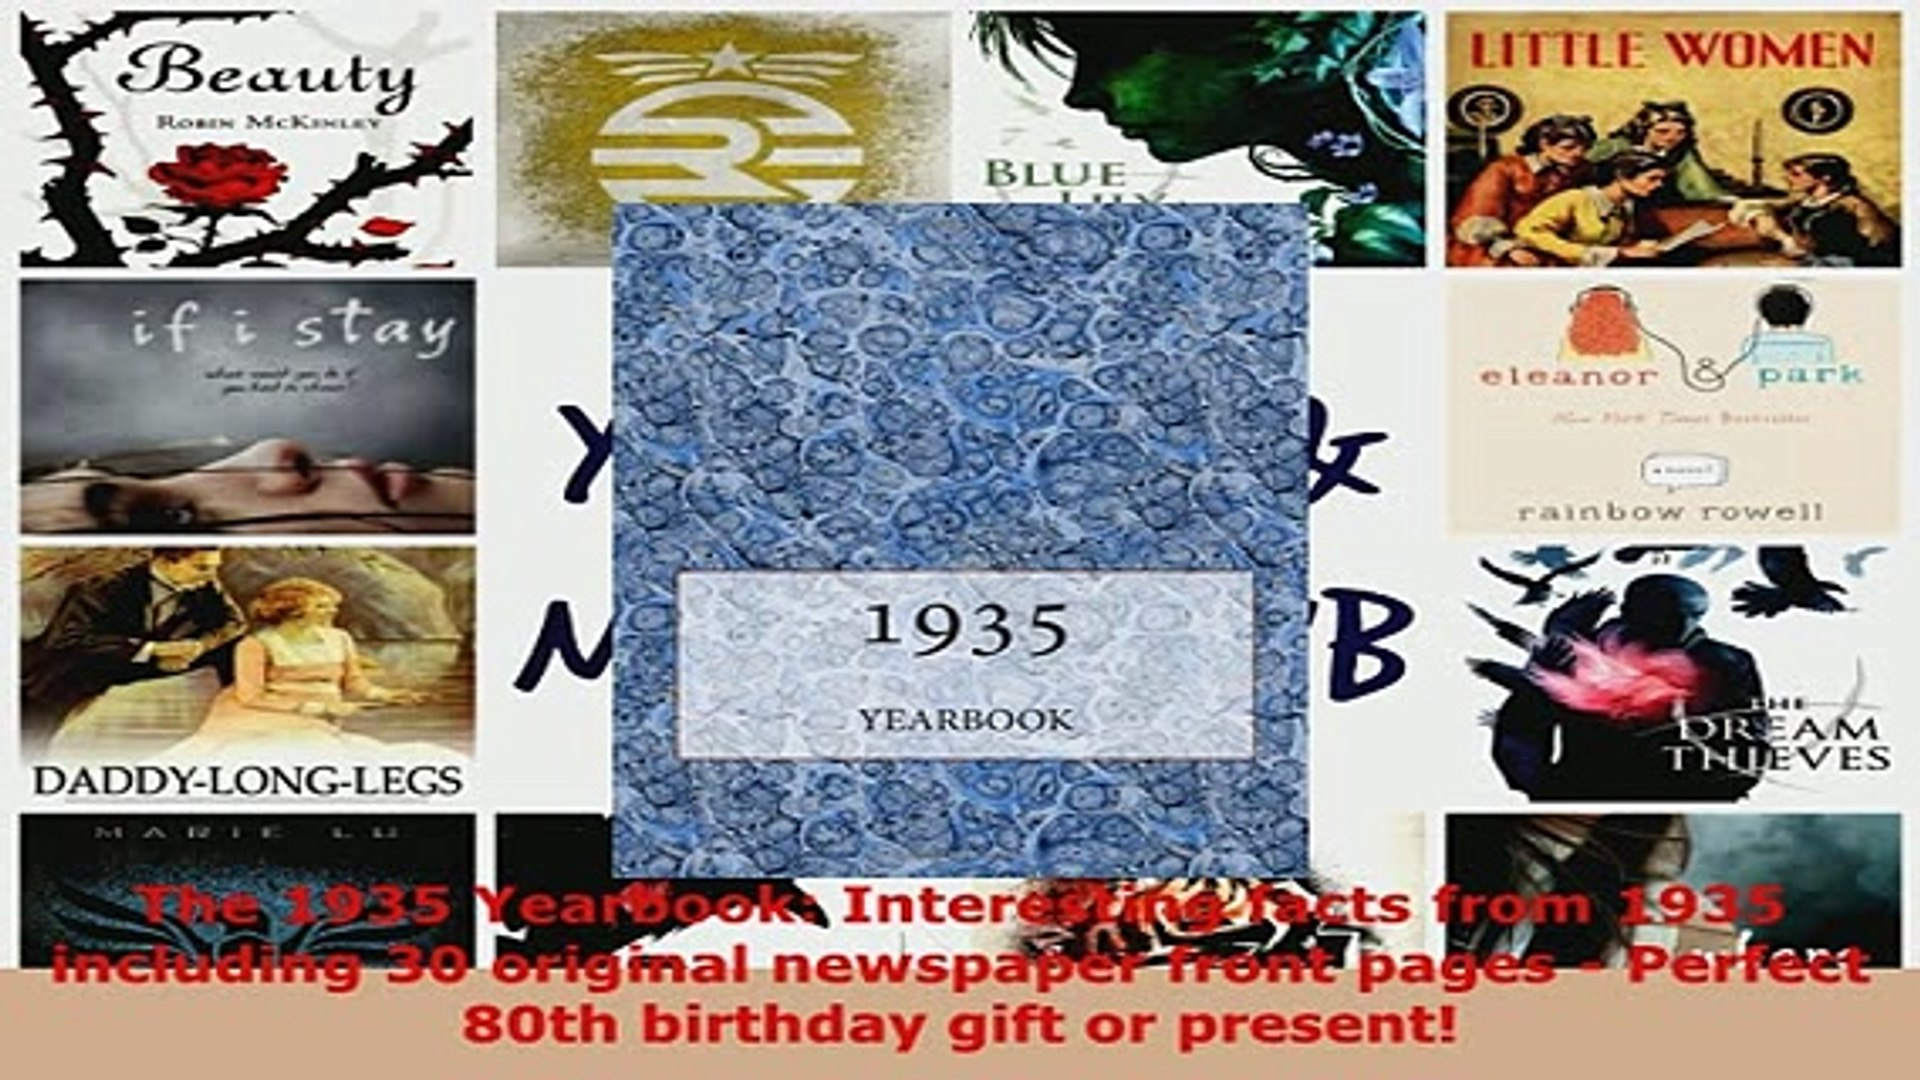 PDF  The 1935 Yearbook Interesting facts from 1935 including 30 original newspaper front pages Read Online